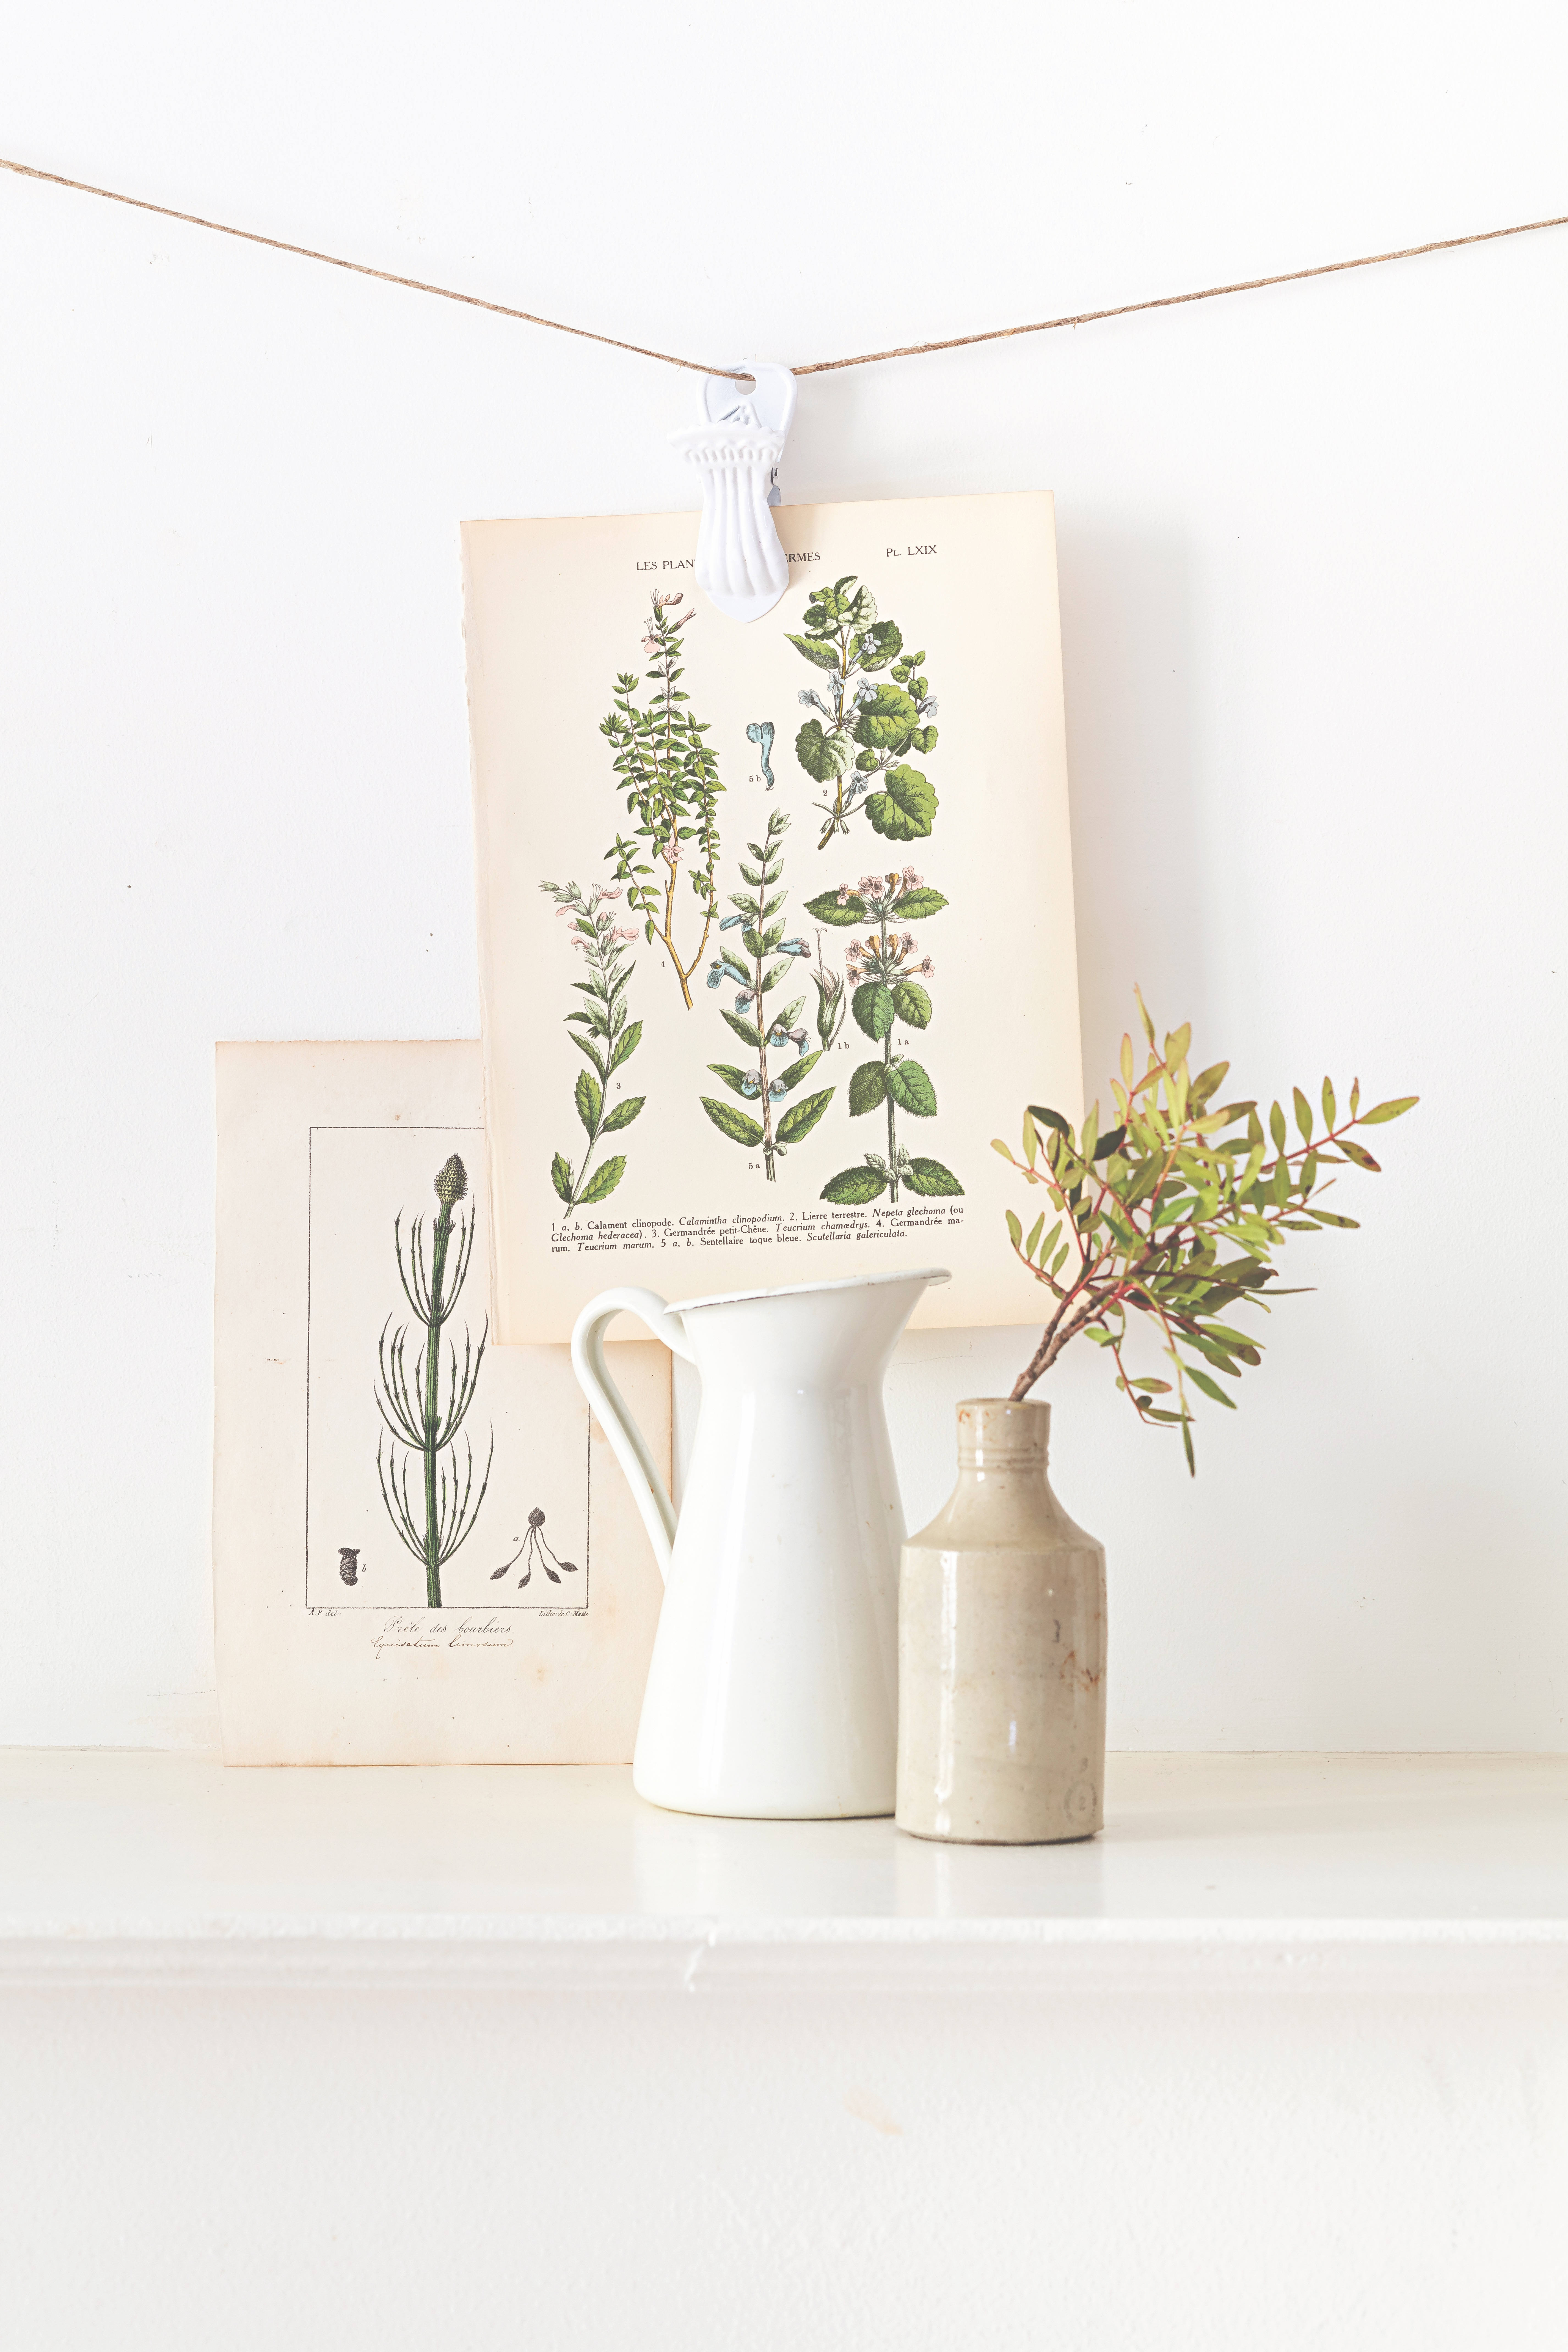 Unsurprisingly, Soulayrol has great styling tips too—such as adorning your walls with vintage botanical prints or engravings in a makeshift wall paper, or hanging them individually from twine.